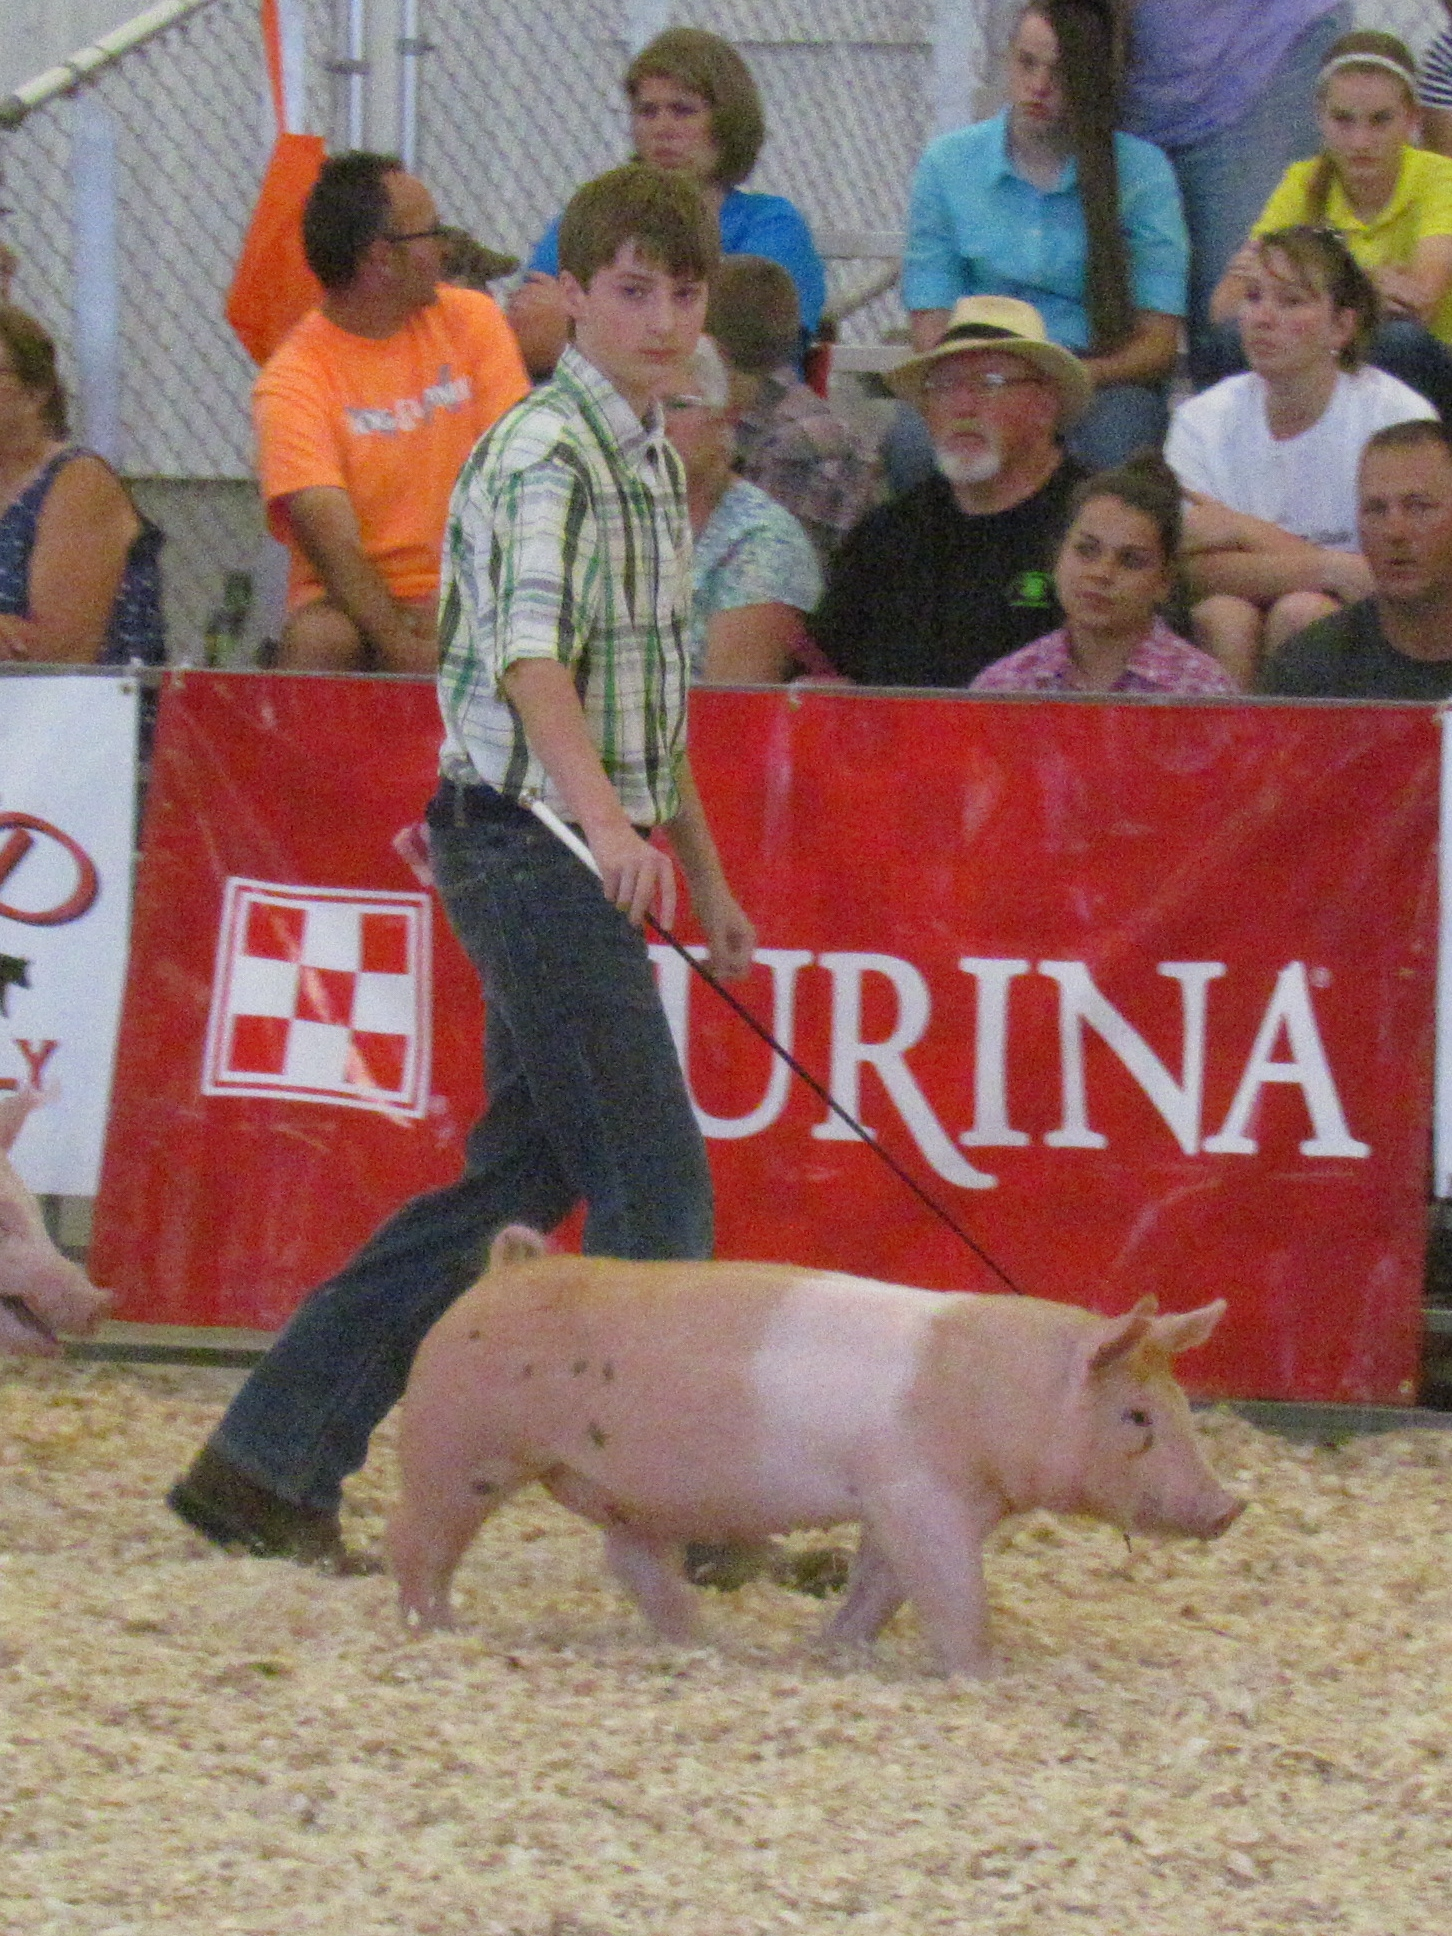 Mertz Family Clay County Fair: 3rd Overall 1st, 2nd and 3rd in class